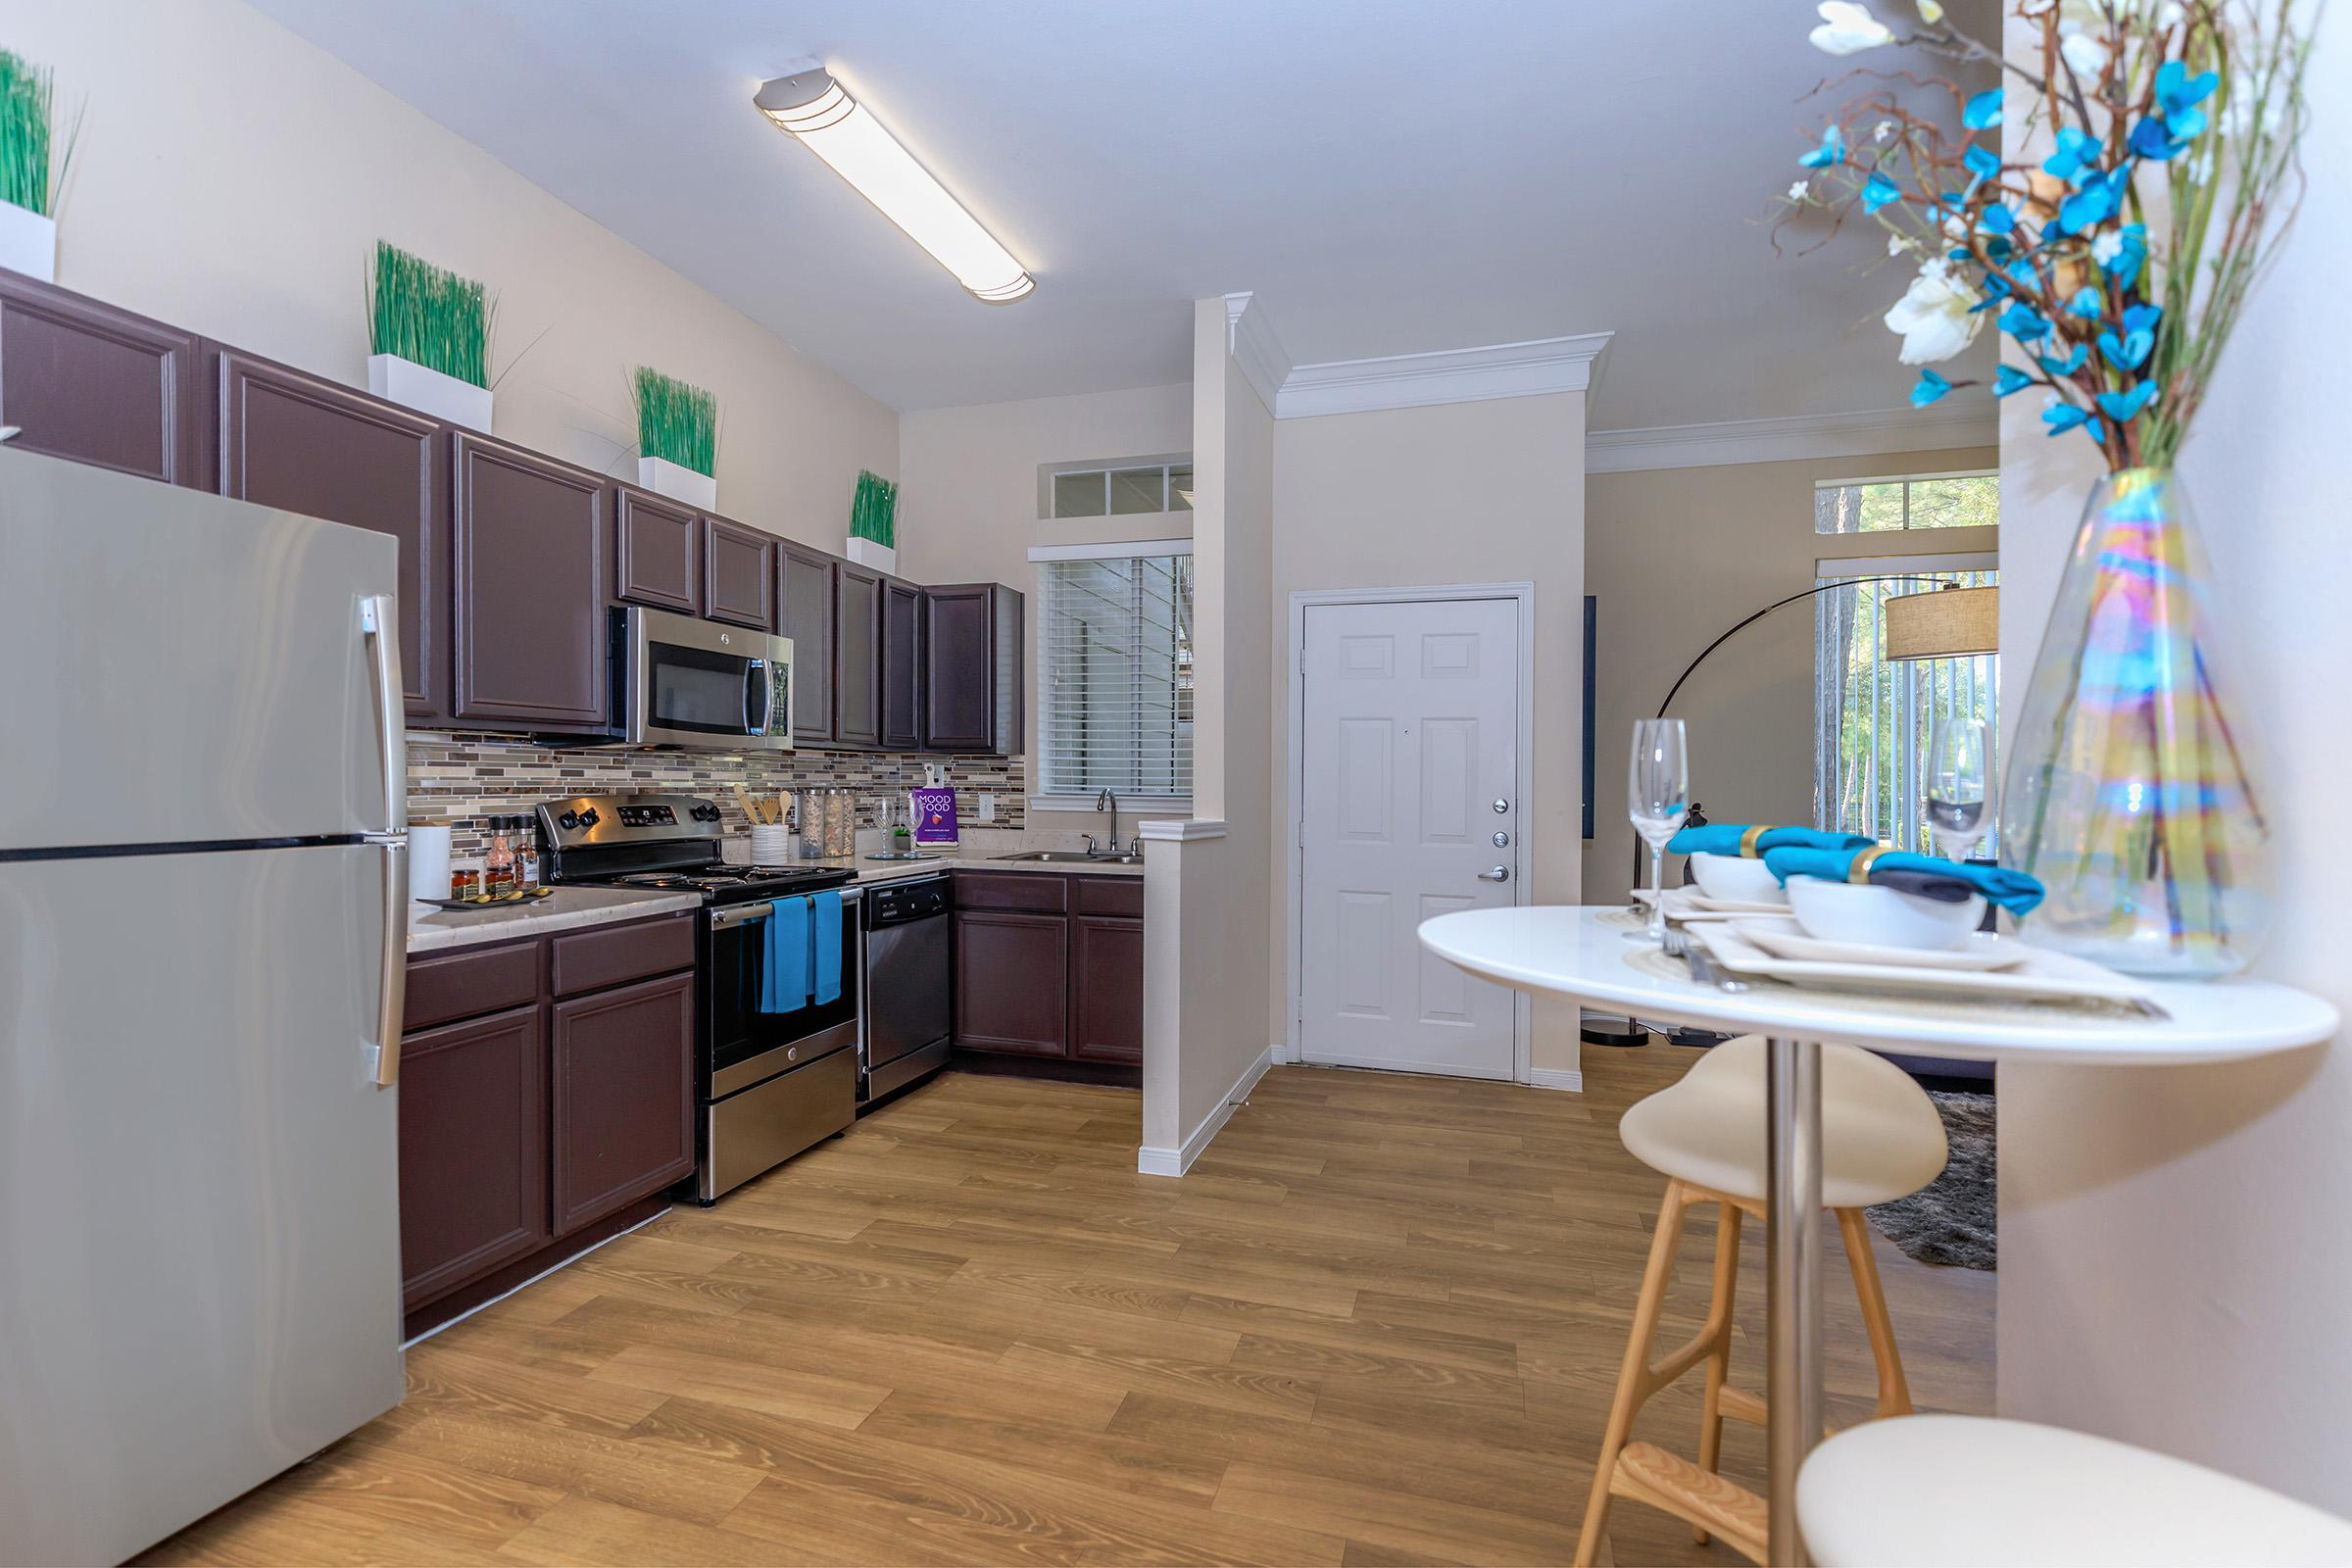 a kitchen with a table in a room